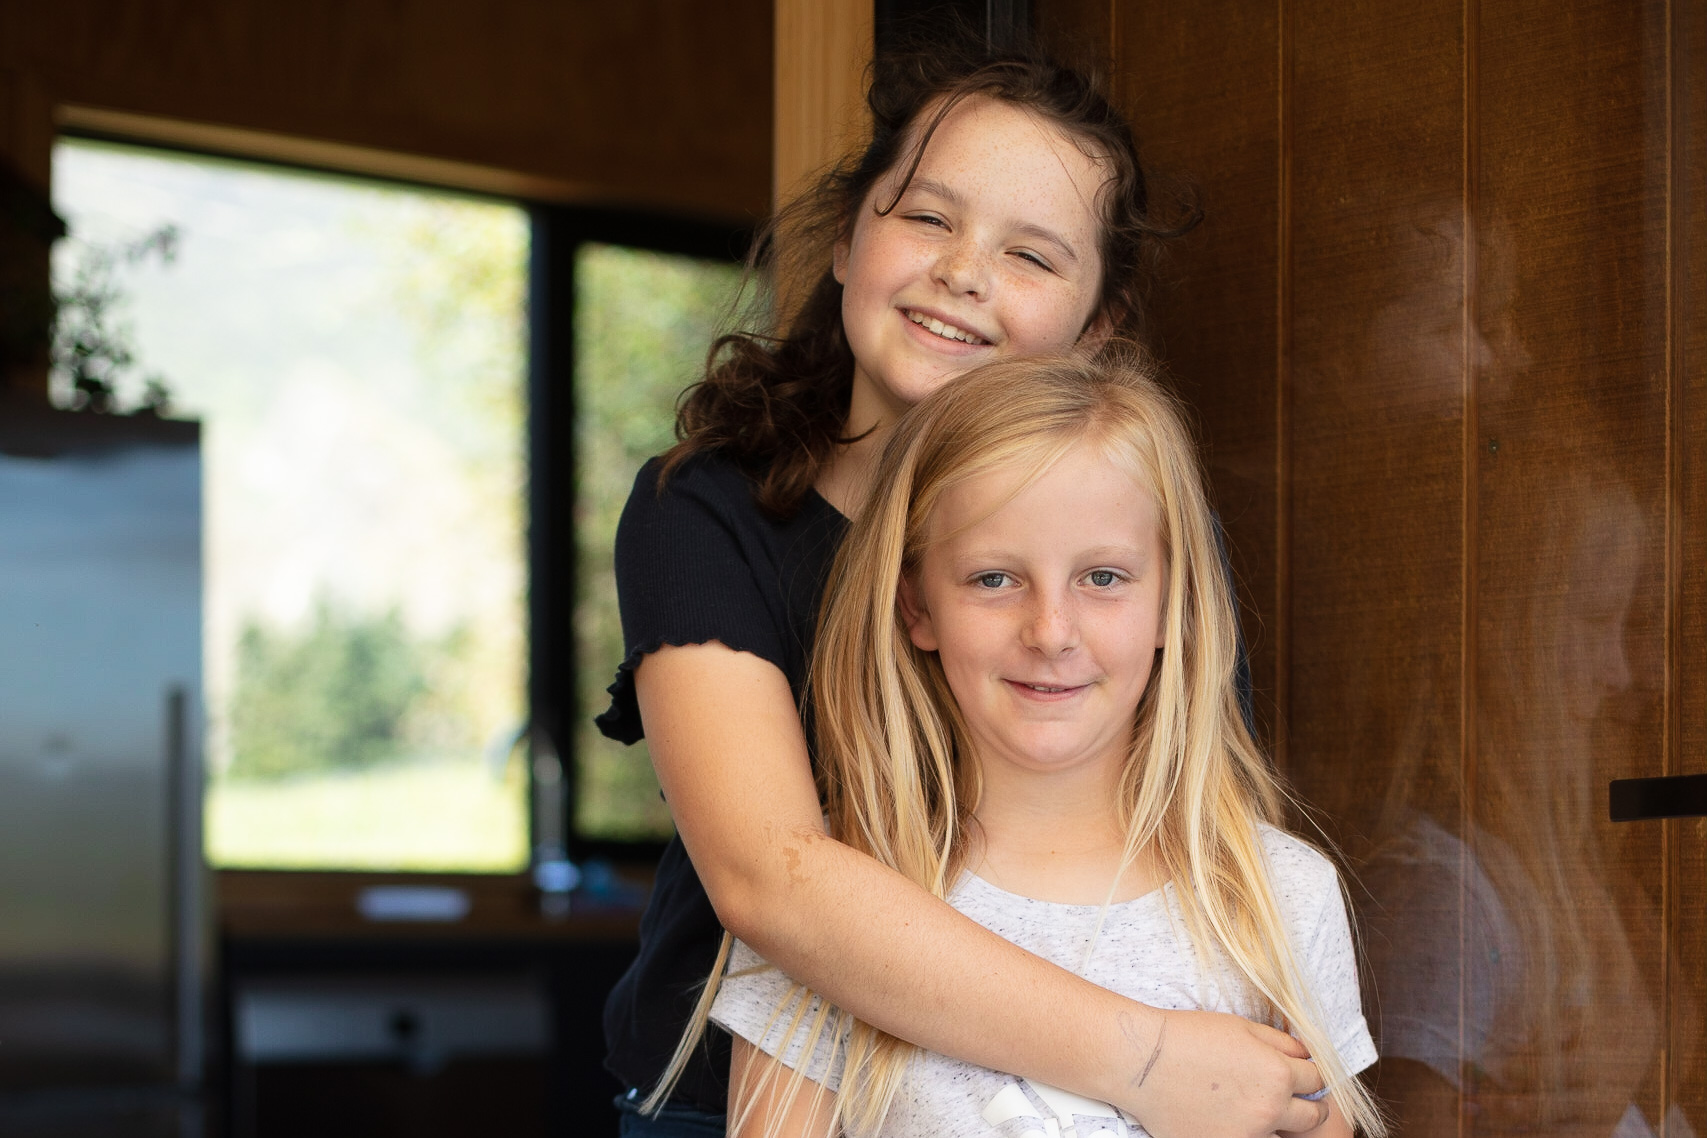 2 young girlfriends hug while smiling for the camera by Paul Green Photographer